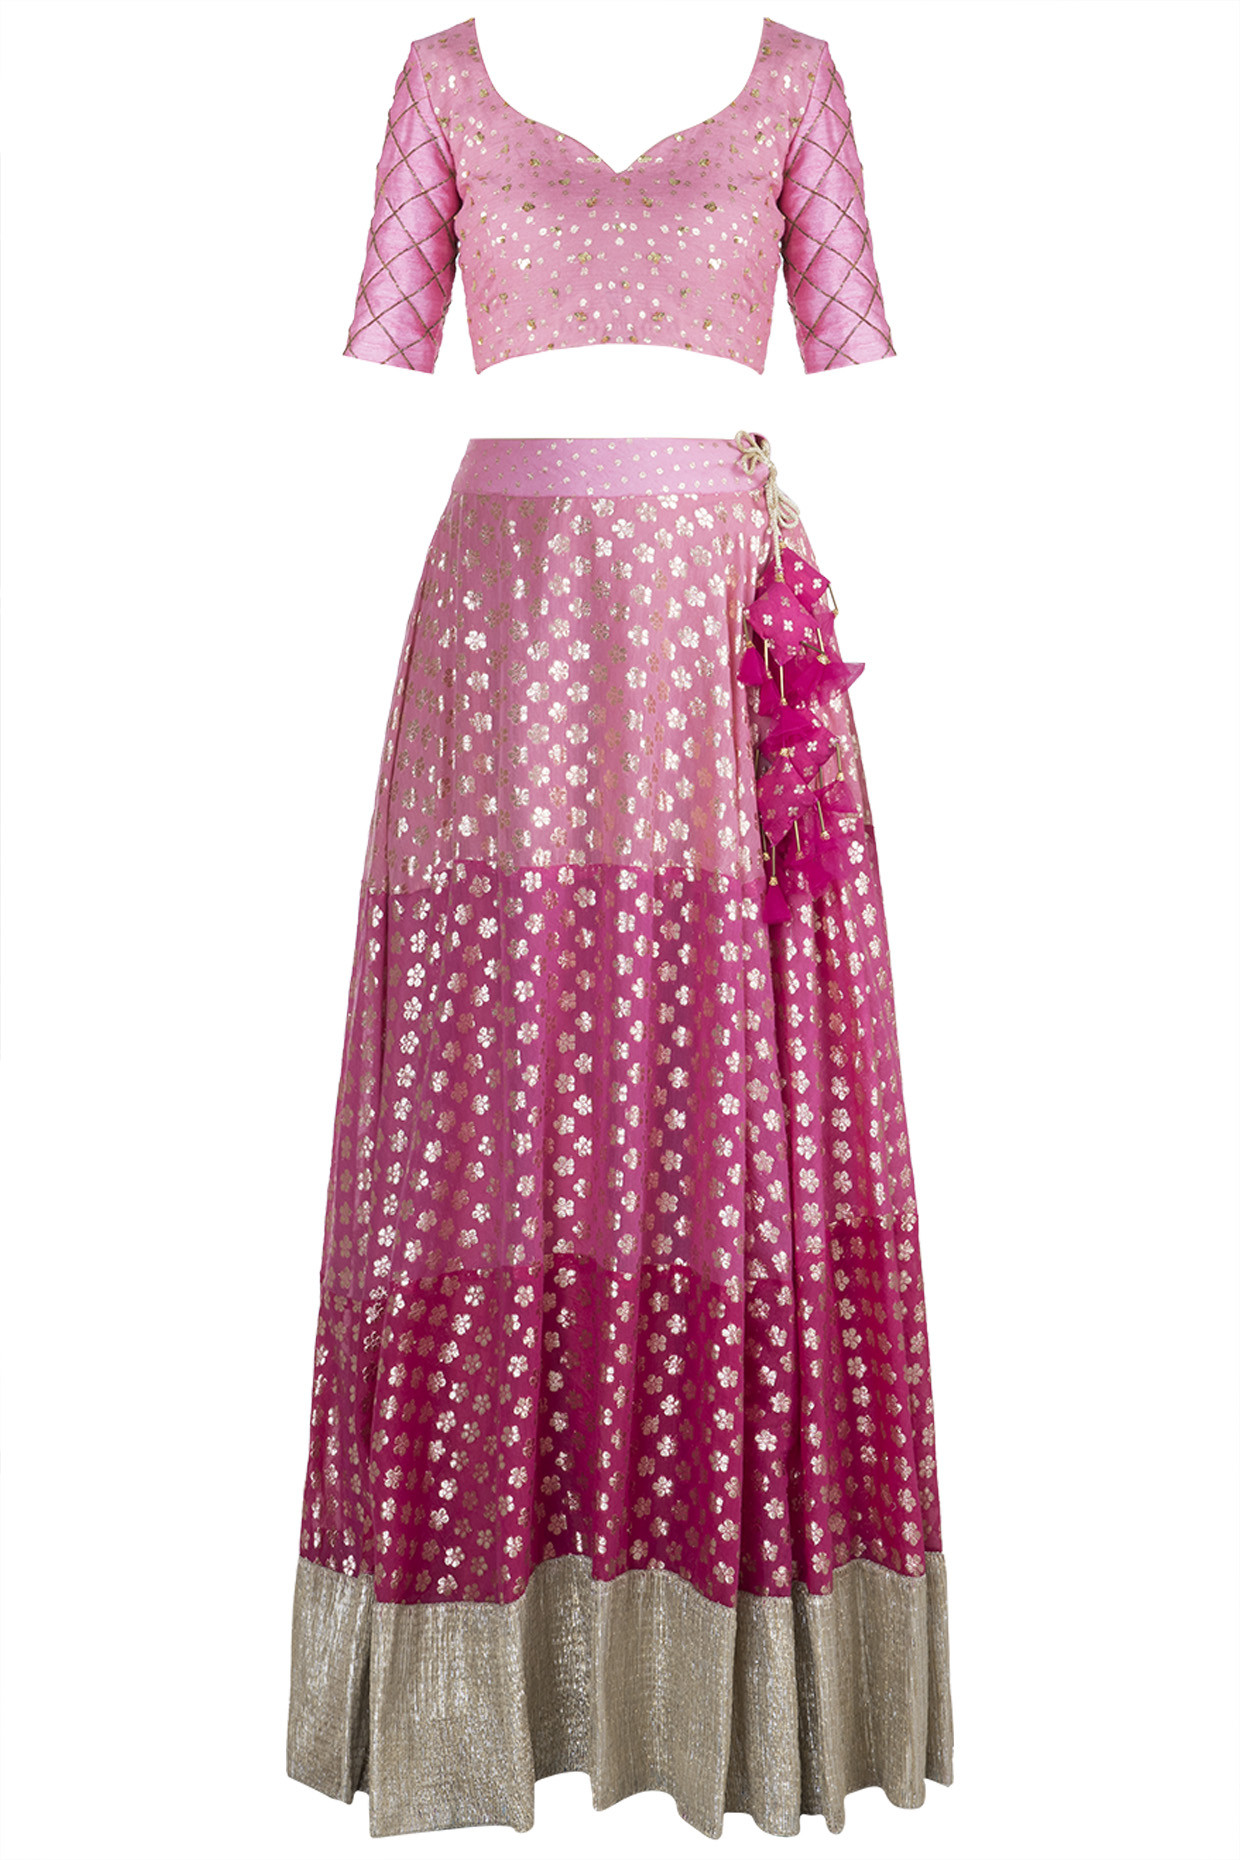 Pink Shaded & Tasseled Lehenga Set by Rishi & Vibhuti